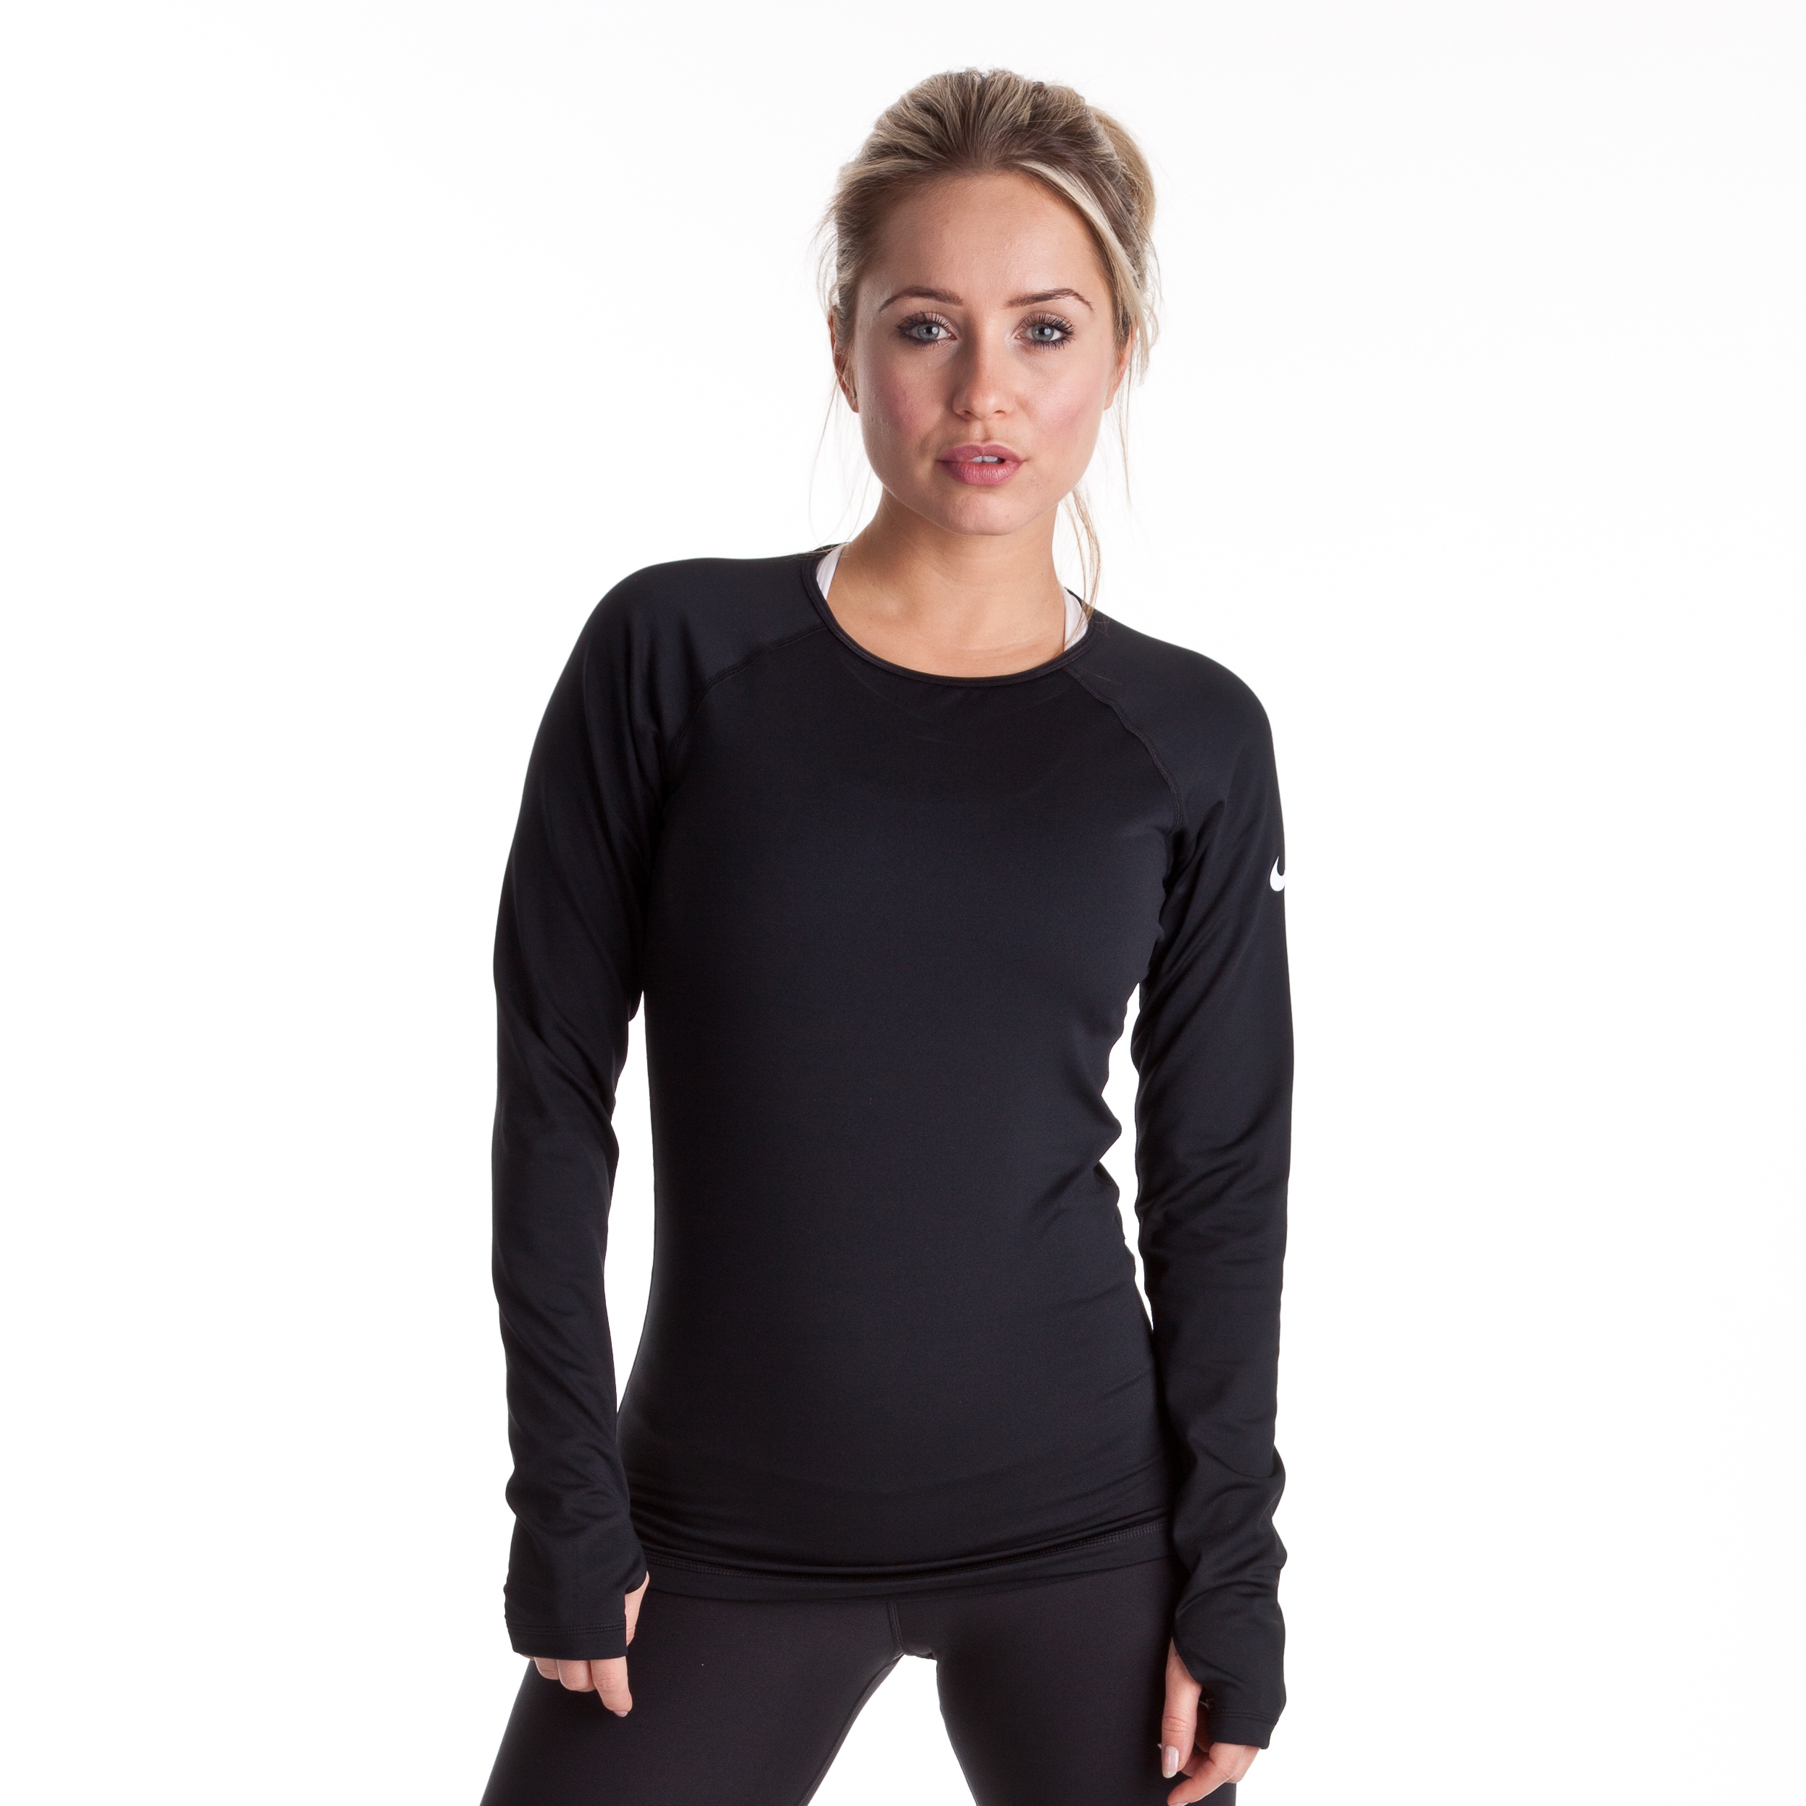 Nike Pro Hyperwarm Crew LS Top - Black/White - Womens